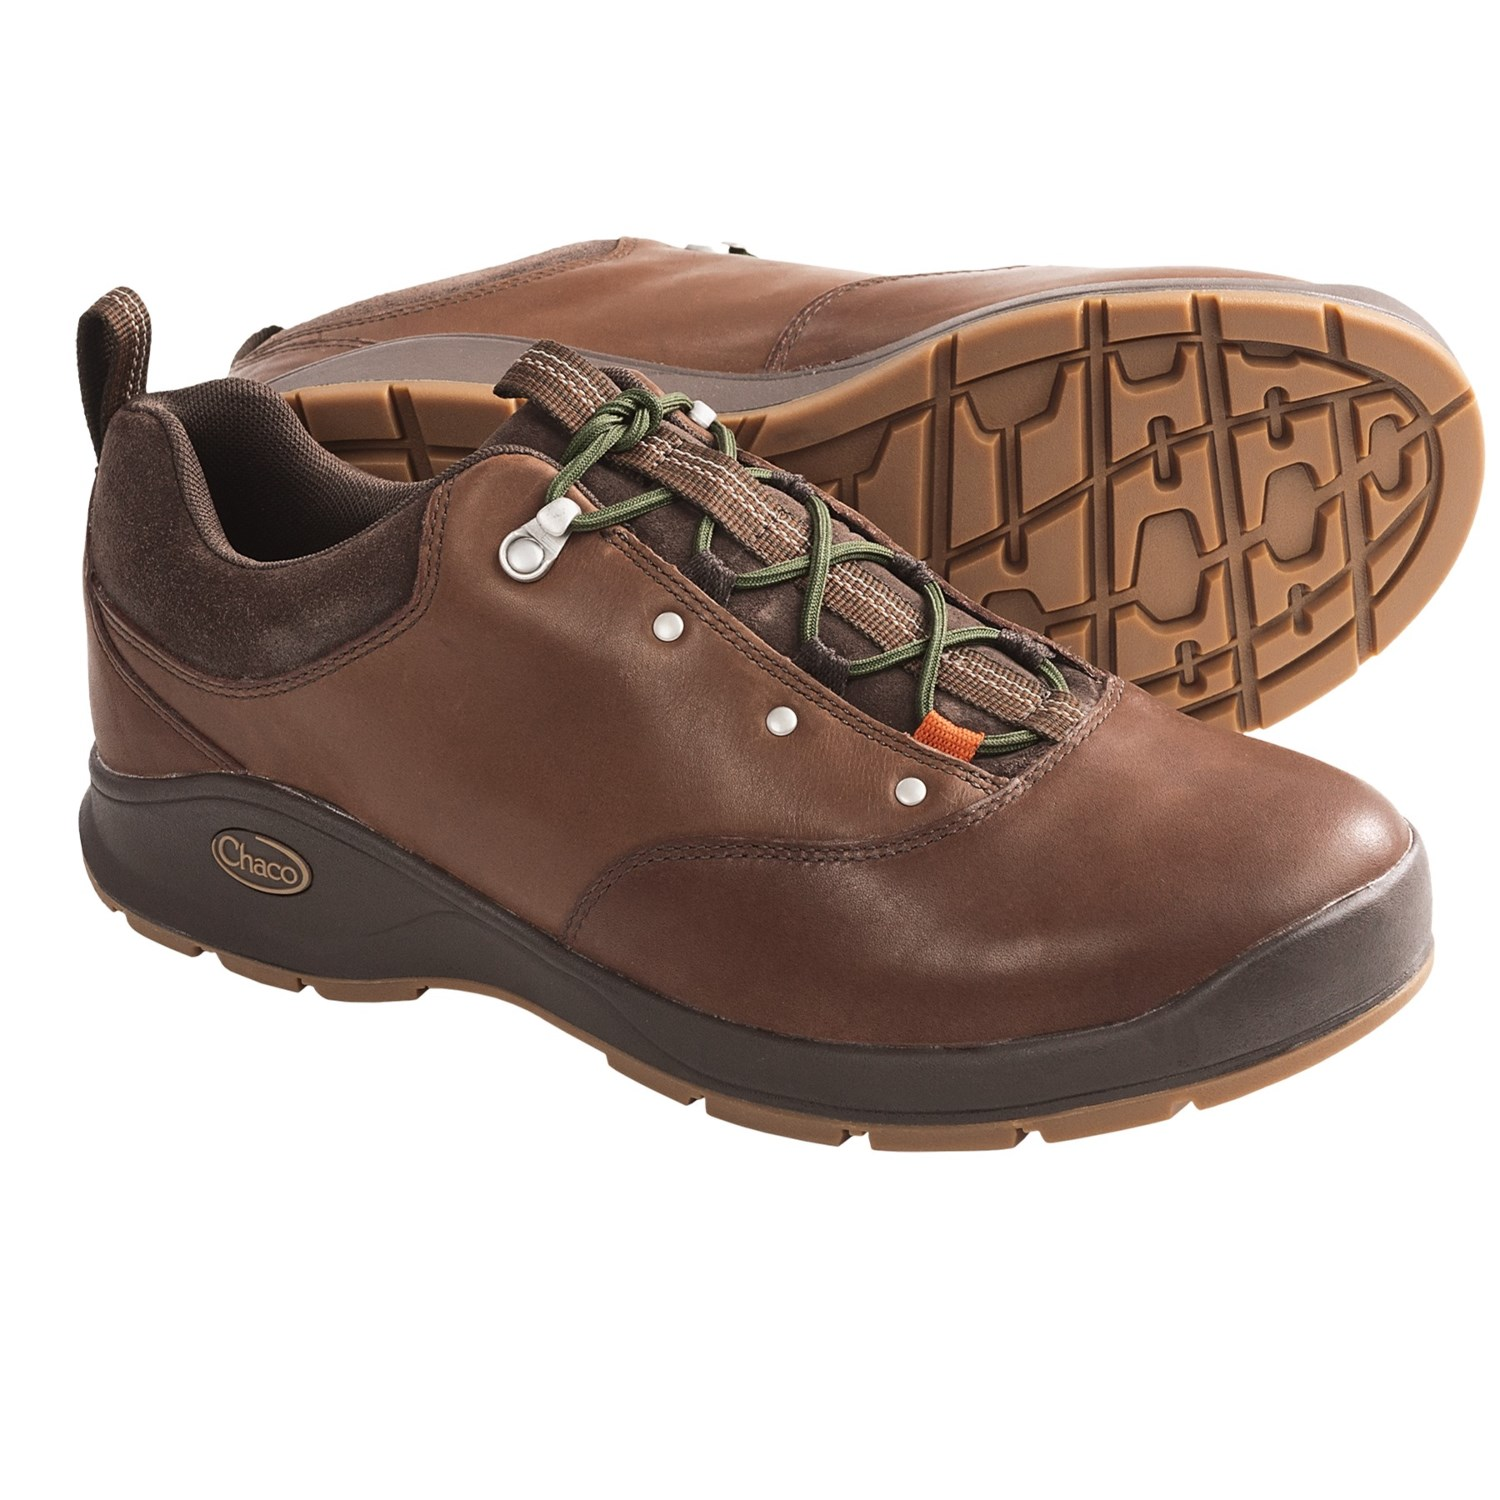 chaco tedinho low shoes leather for save 40